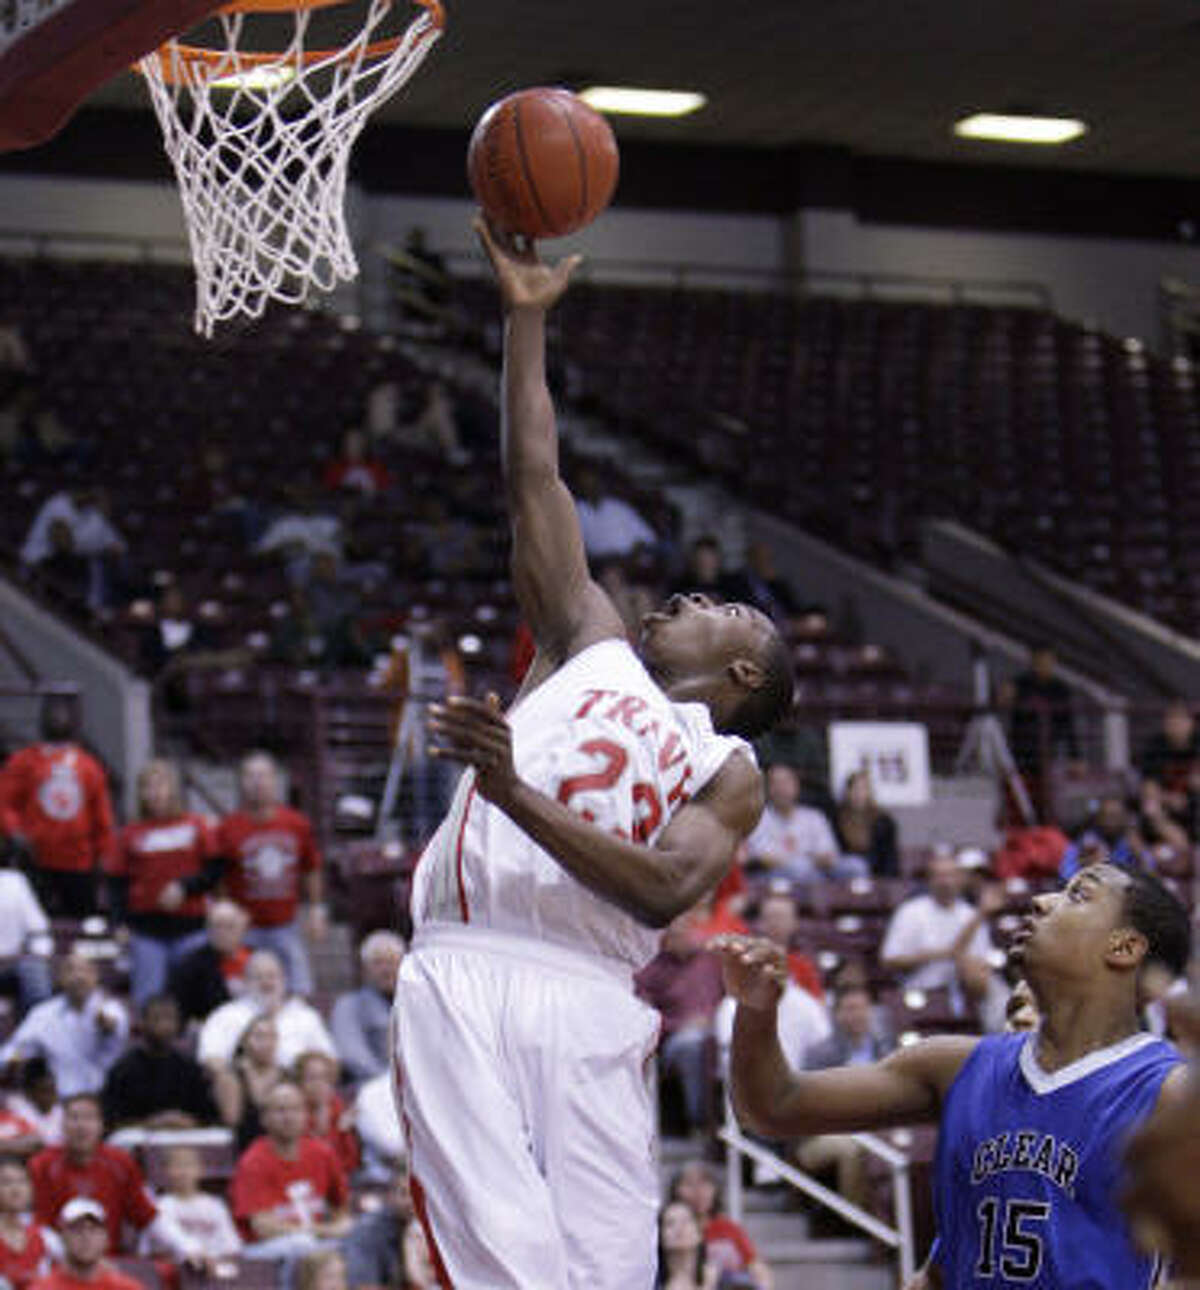 March 2: Travis 58, Clear Springs 46 Travis' Anthony Odunsi floats in for a layup over Clear Springs' Jeff Beverly during Wednesday's Class 5A Region III quarterfinal at the Campbell Center. Odunsi scored 15 points to help lead Travis to a win.